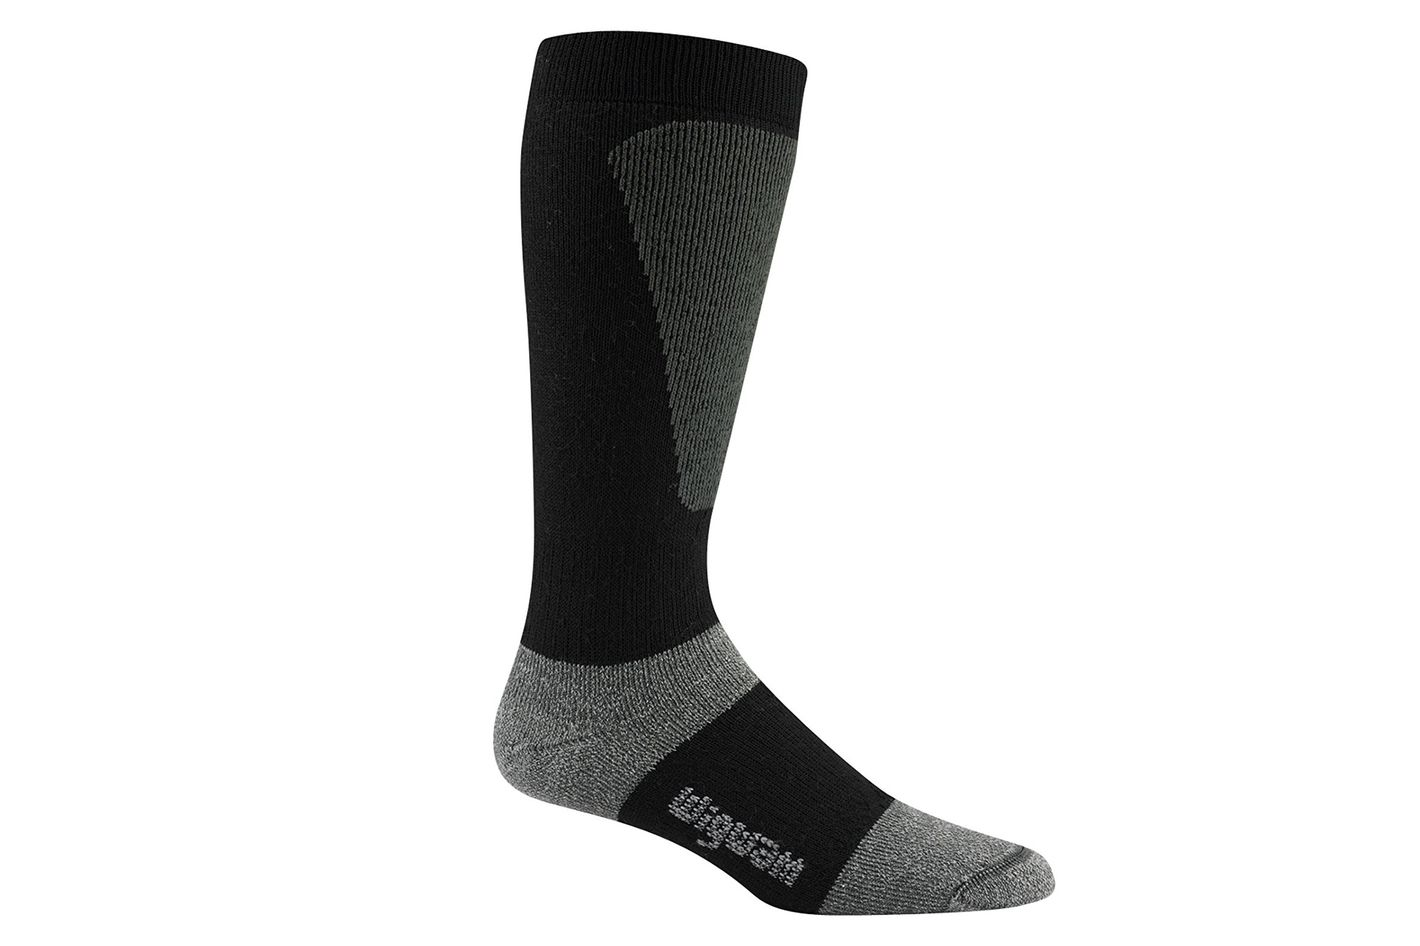 Wigwam Men's Knee-High Performance Ski Socks